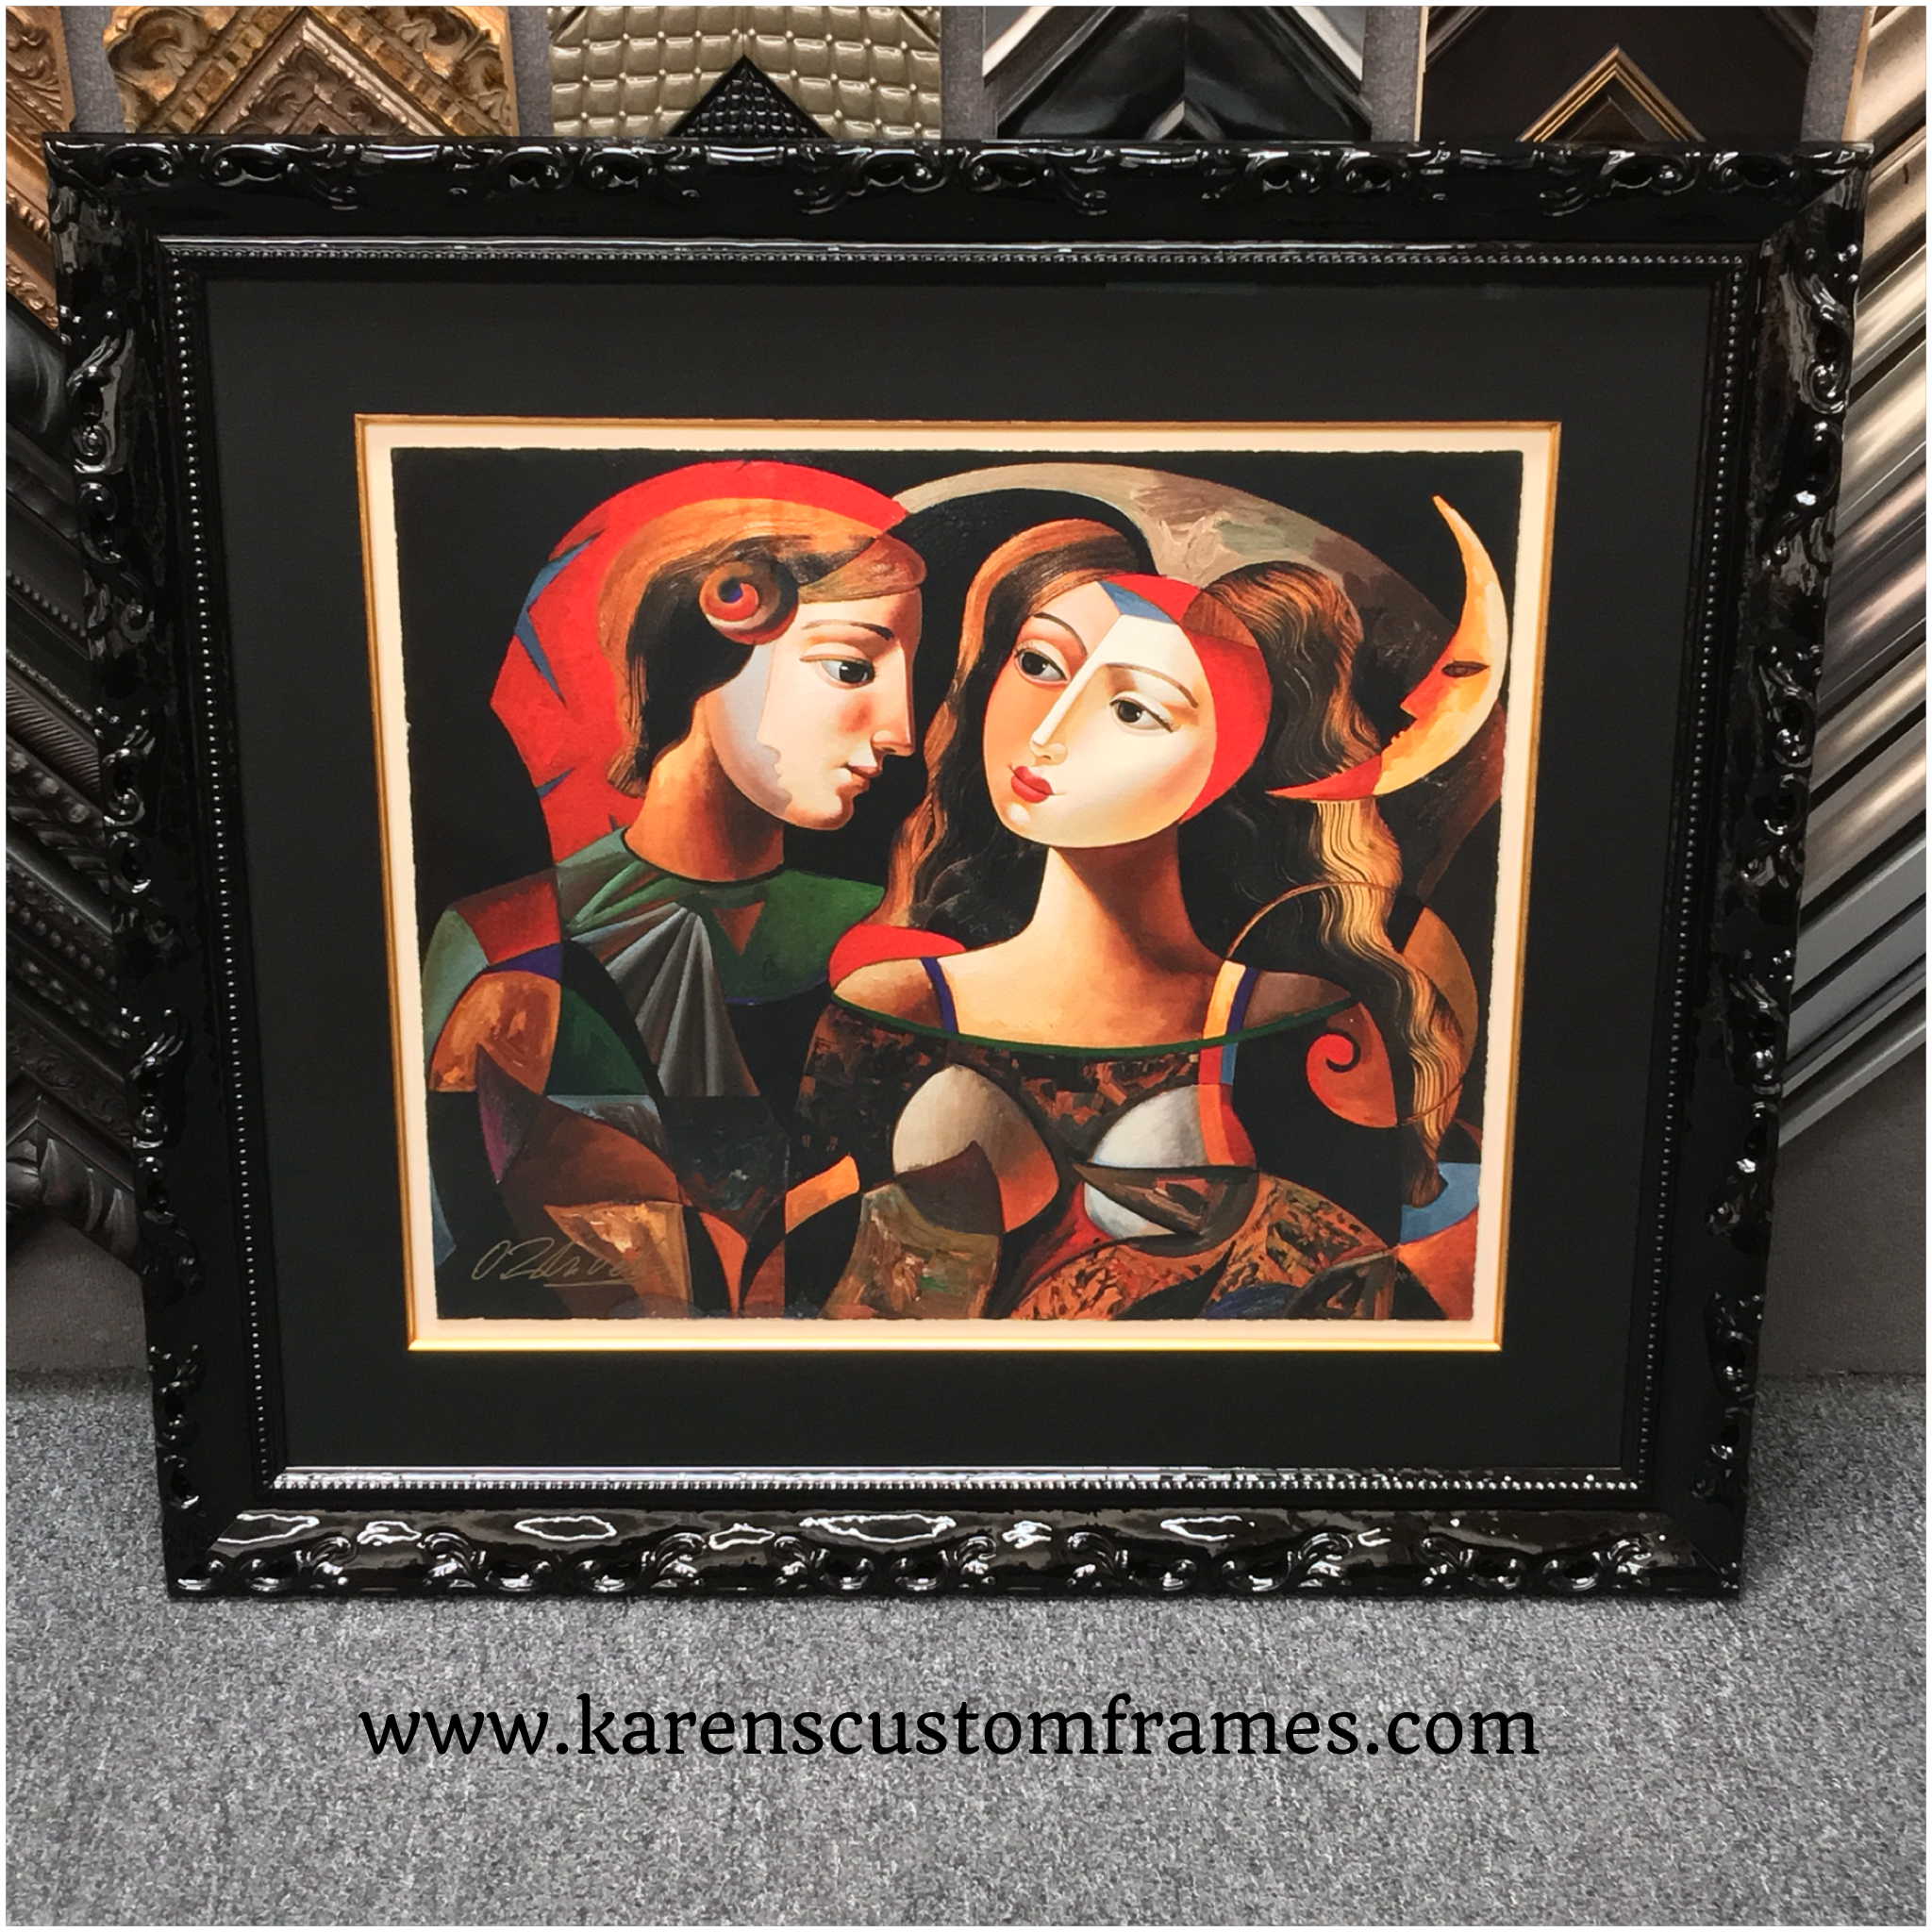 Fine Art | Custom Design and Framing by Karen's Detail Custom Frames, Orange County CA